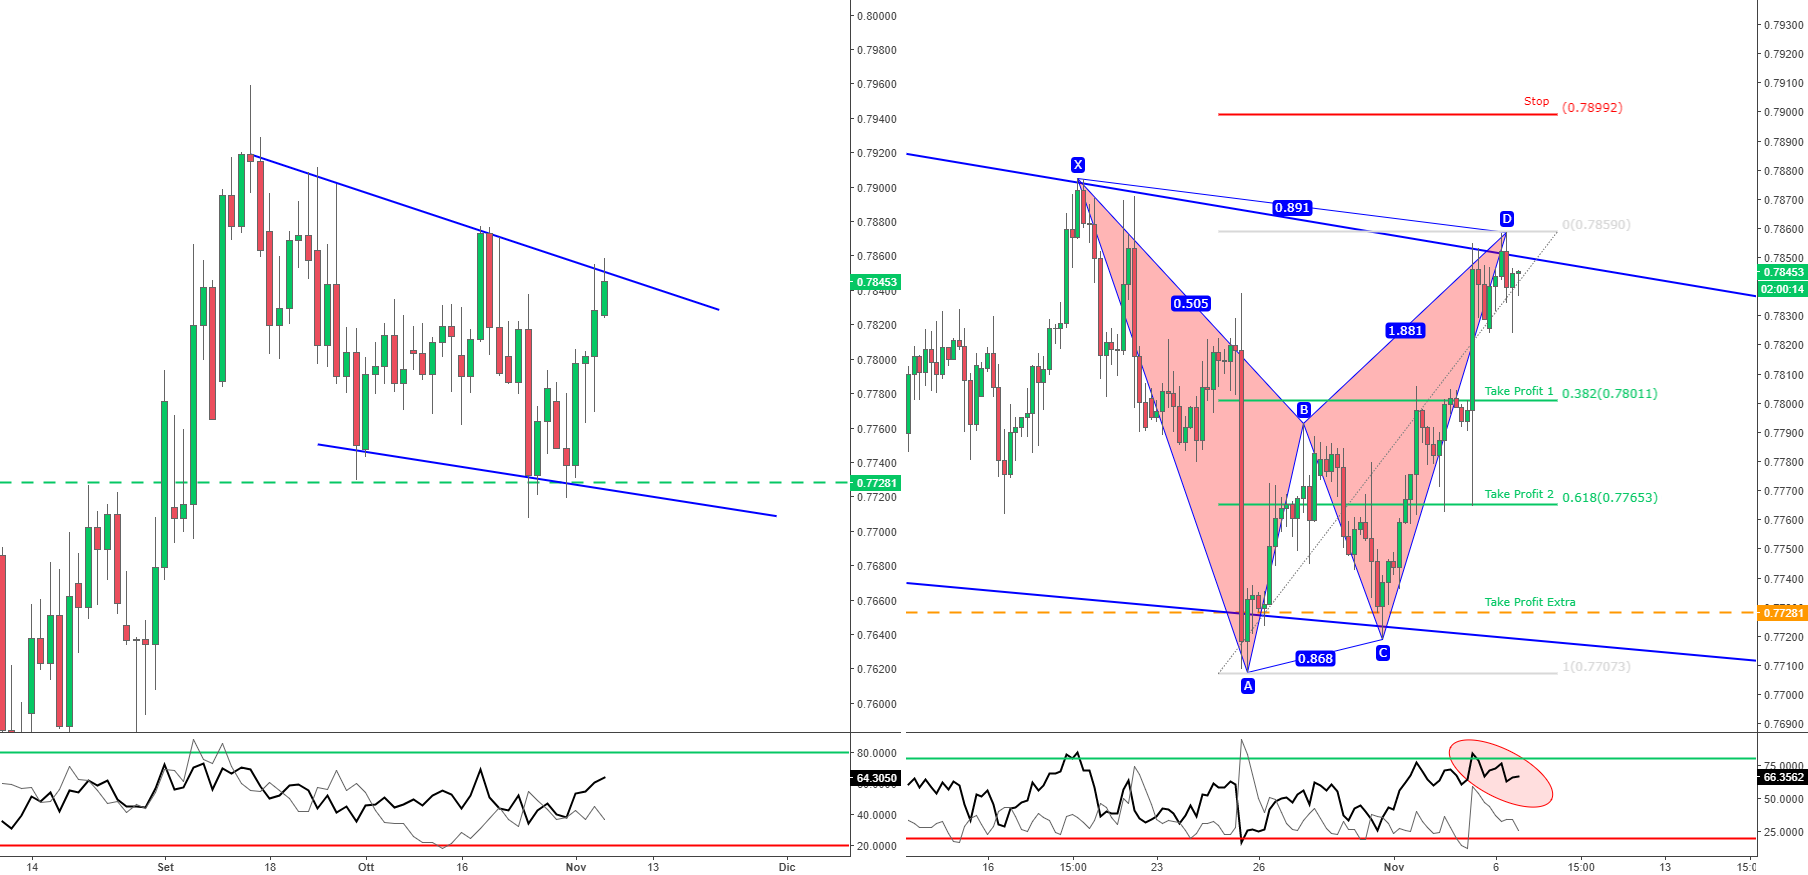 CAD/CHF - BAT Pattern ribassista dentro Wedge Giornaliero